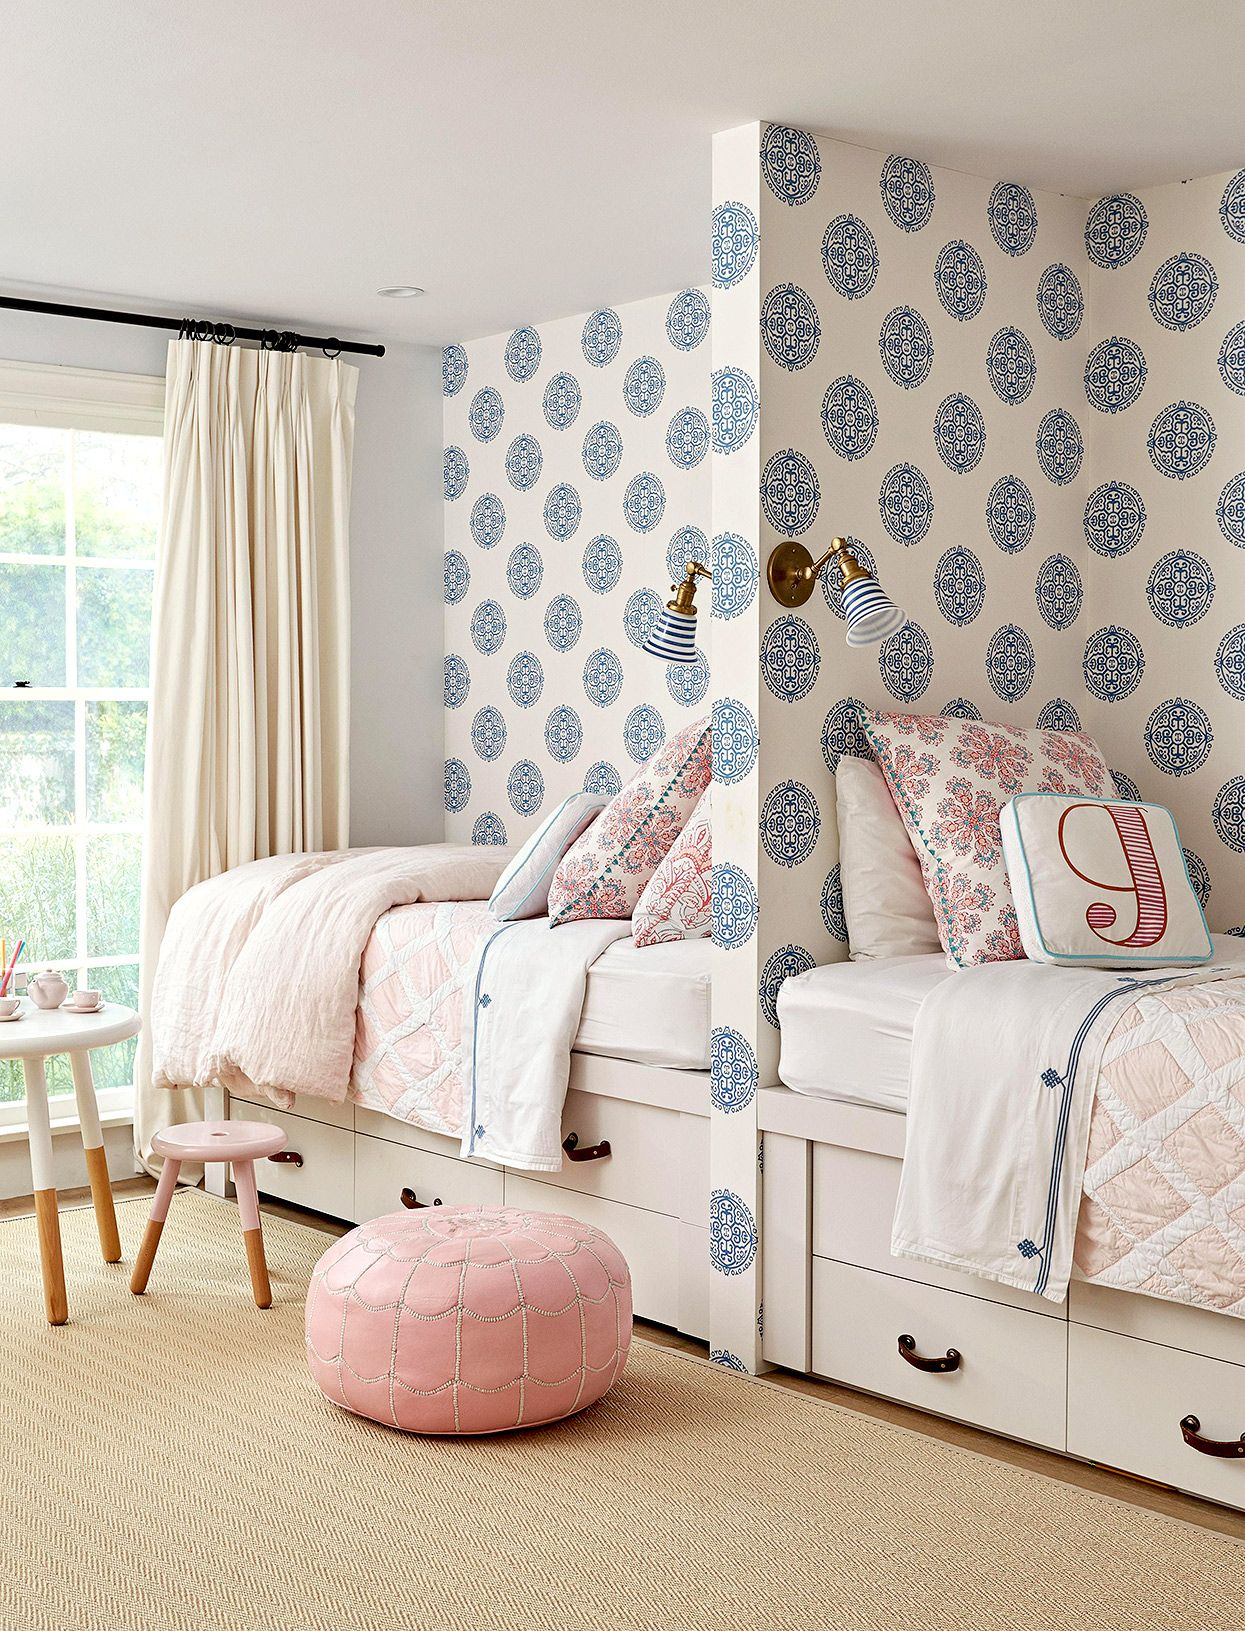 These Shared Bedroom Ideas For Small Rooms Double Up On Storage And Style Shared Girls Bedroom Shared Girls Room Shared Bedroom